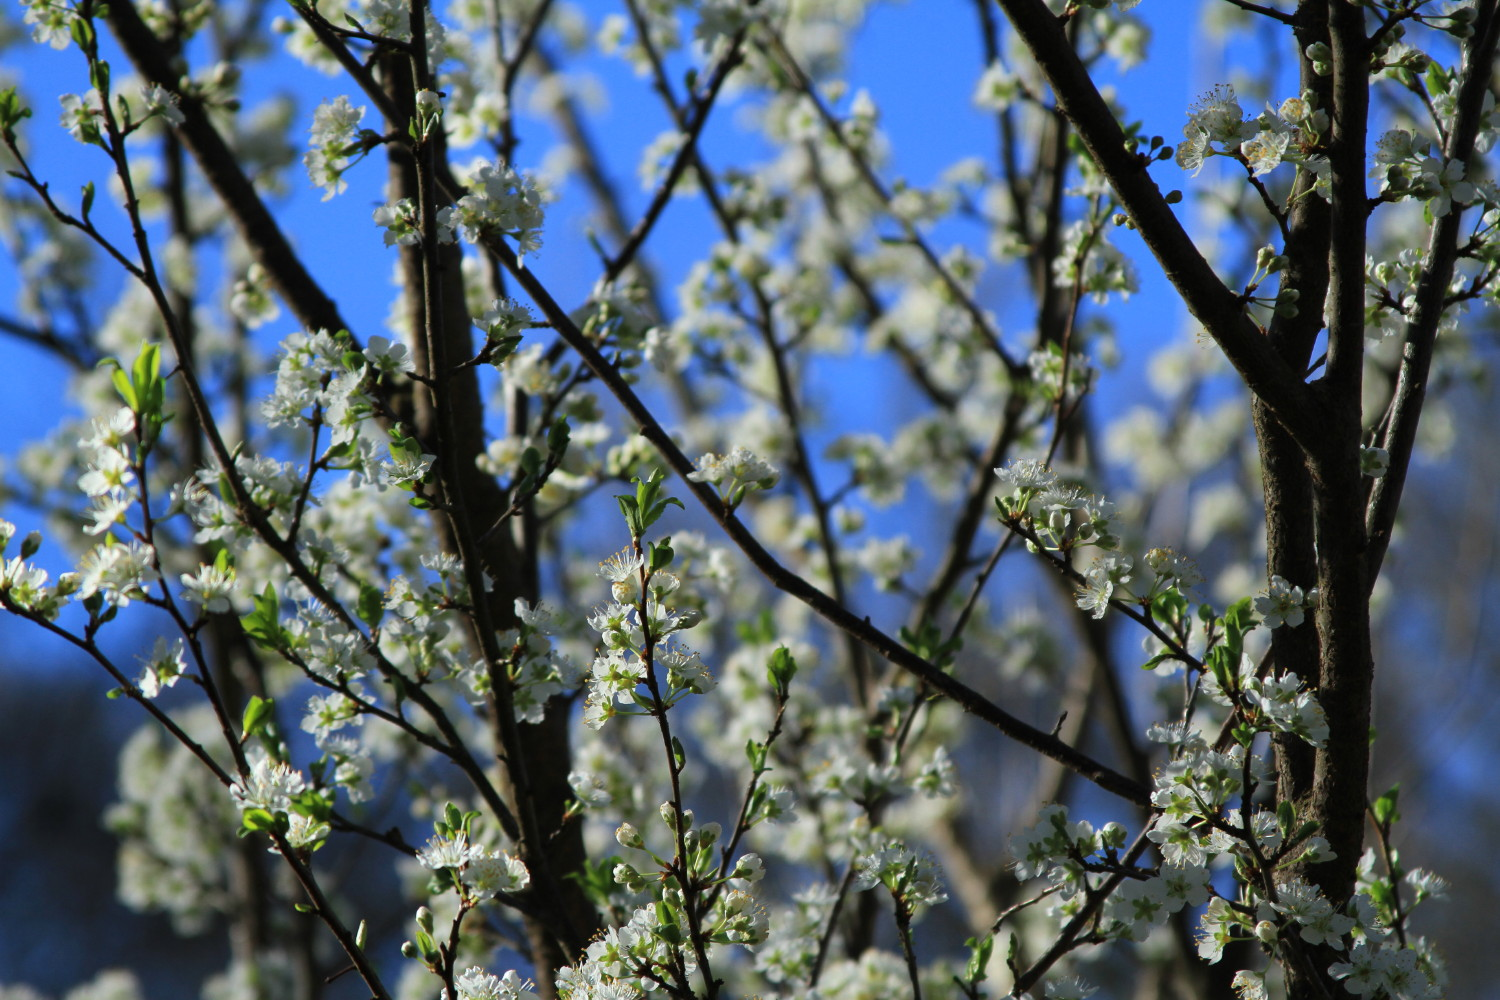 Blossoming fruit tree in Kirkwood Urban Forest (KUF) by Anke Larkworthy